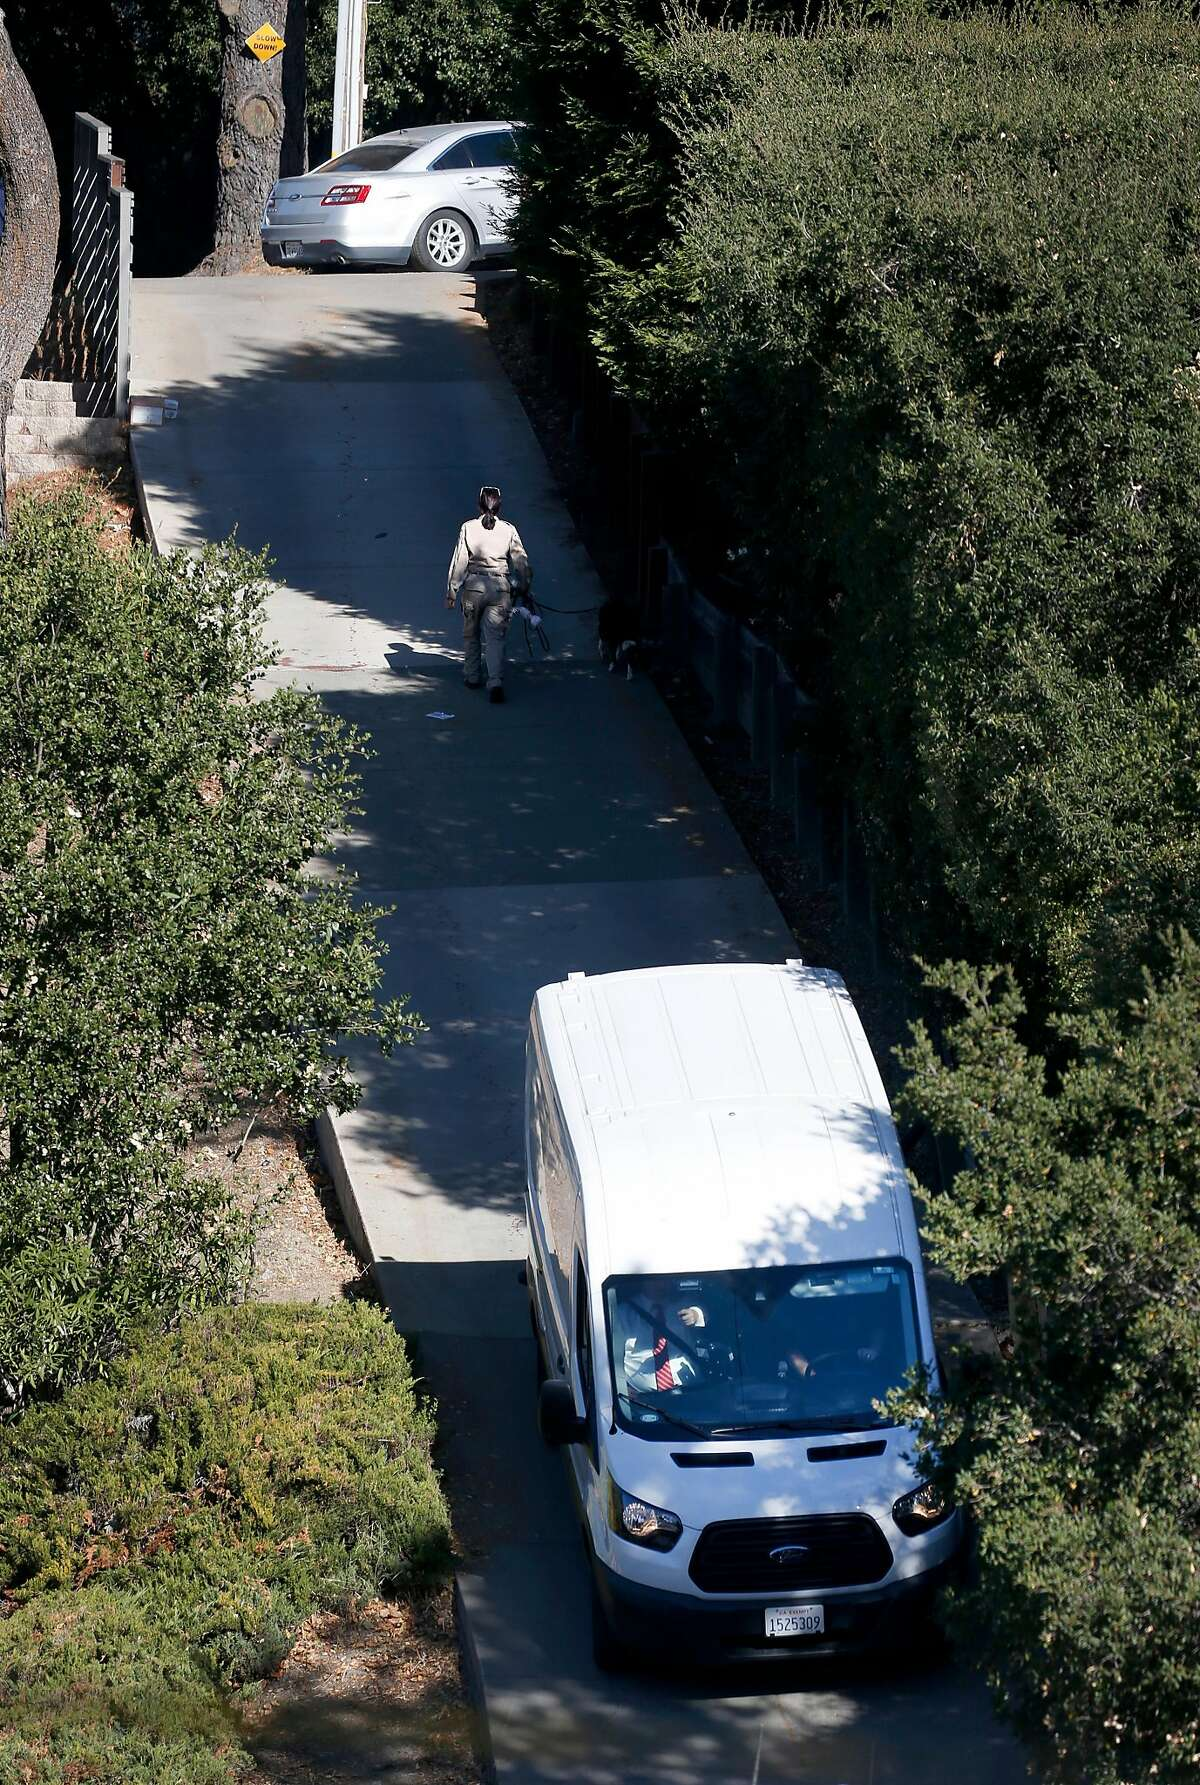 A Contra Costa County coroner's van leaves from a home on Lucille Way in Orinda, Calif. on Friday, Nov. 1, 2019 after four people were killed and several left injured in a shooting during a Halloween party Thursday night.